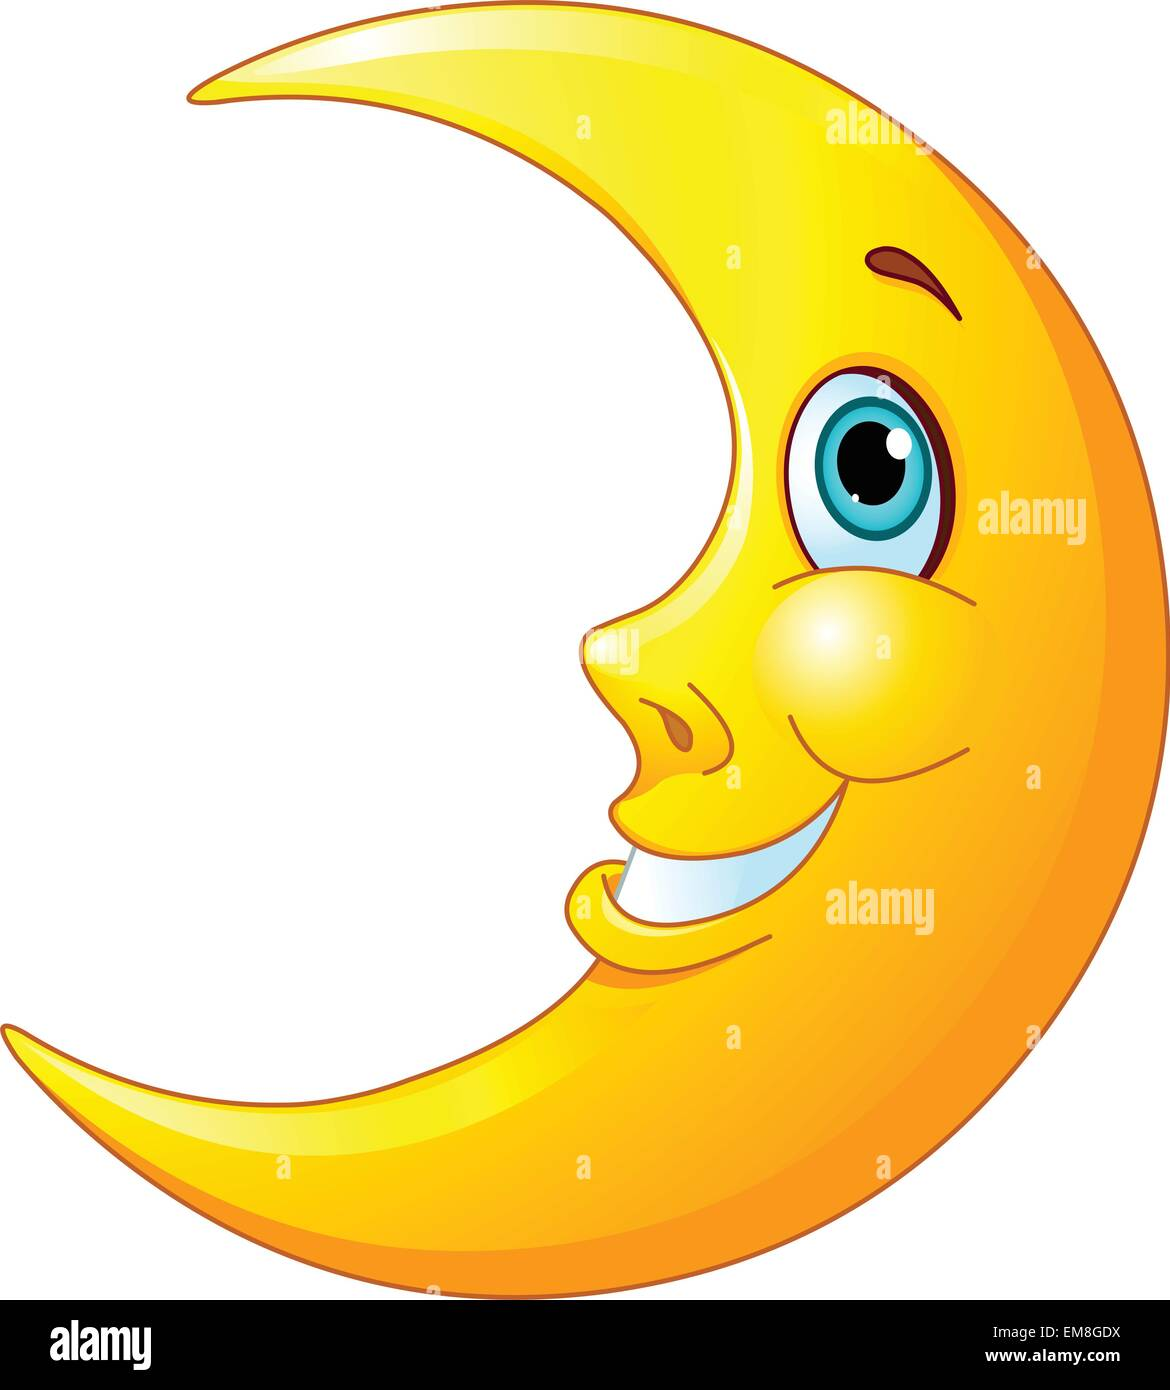 Half Crescent Moon With Face Tattoo: Smiling Moon Stock Vector Art & Illustration, Vector Image